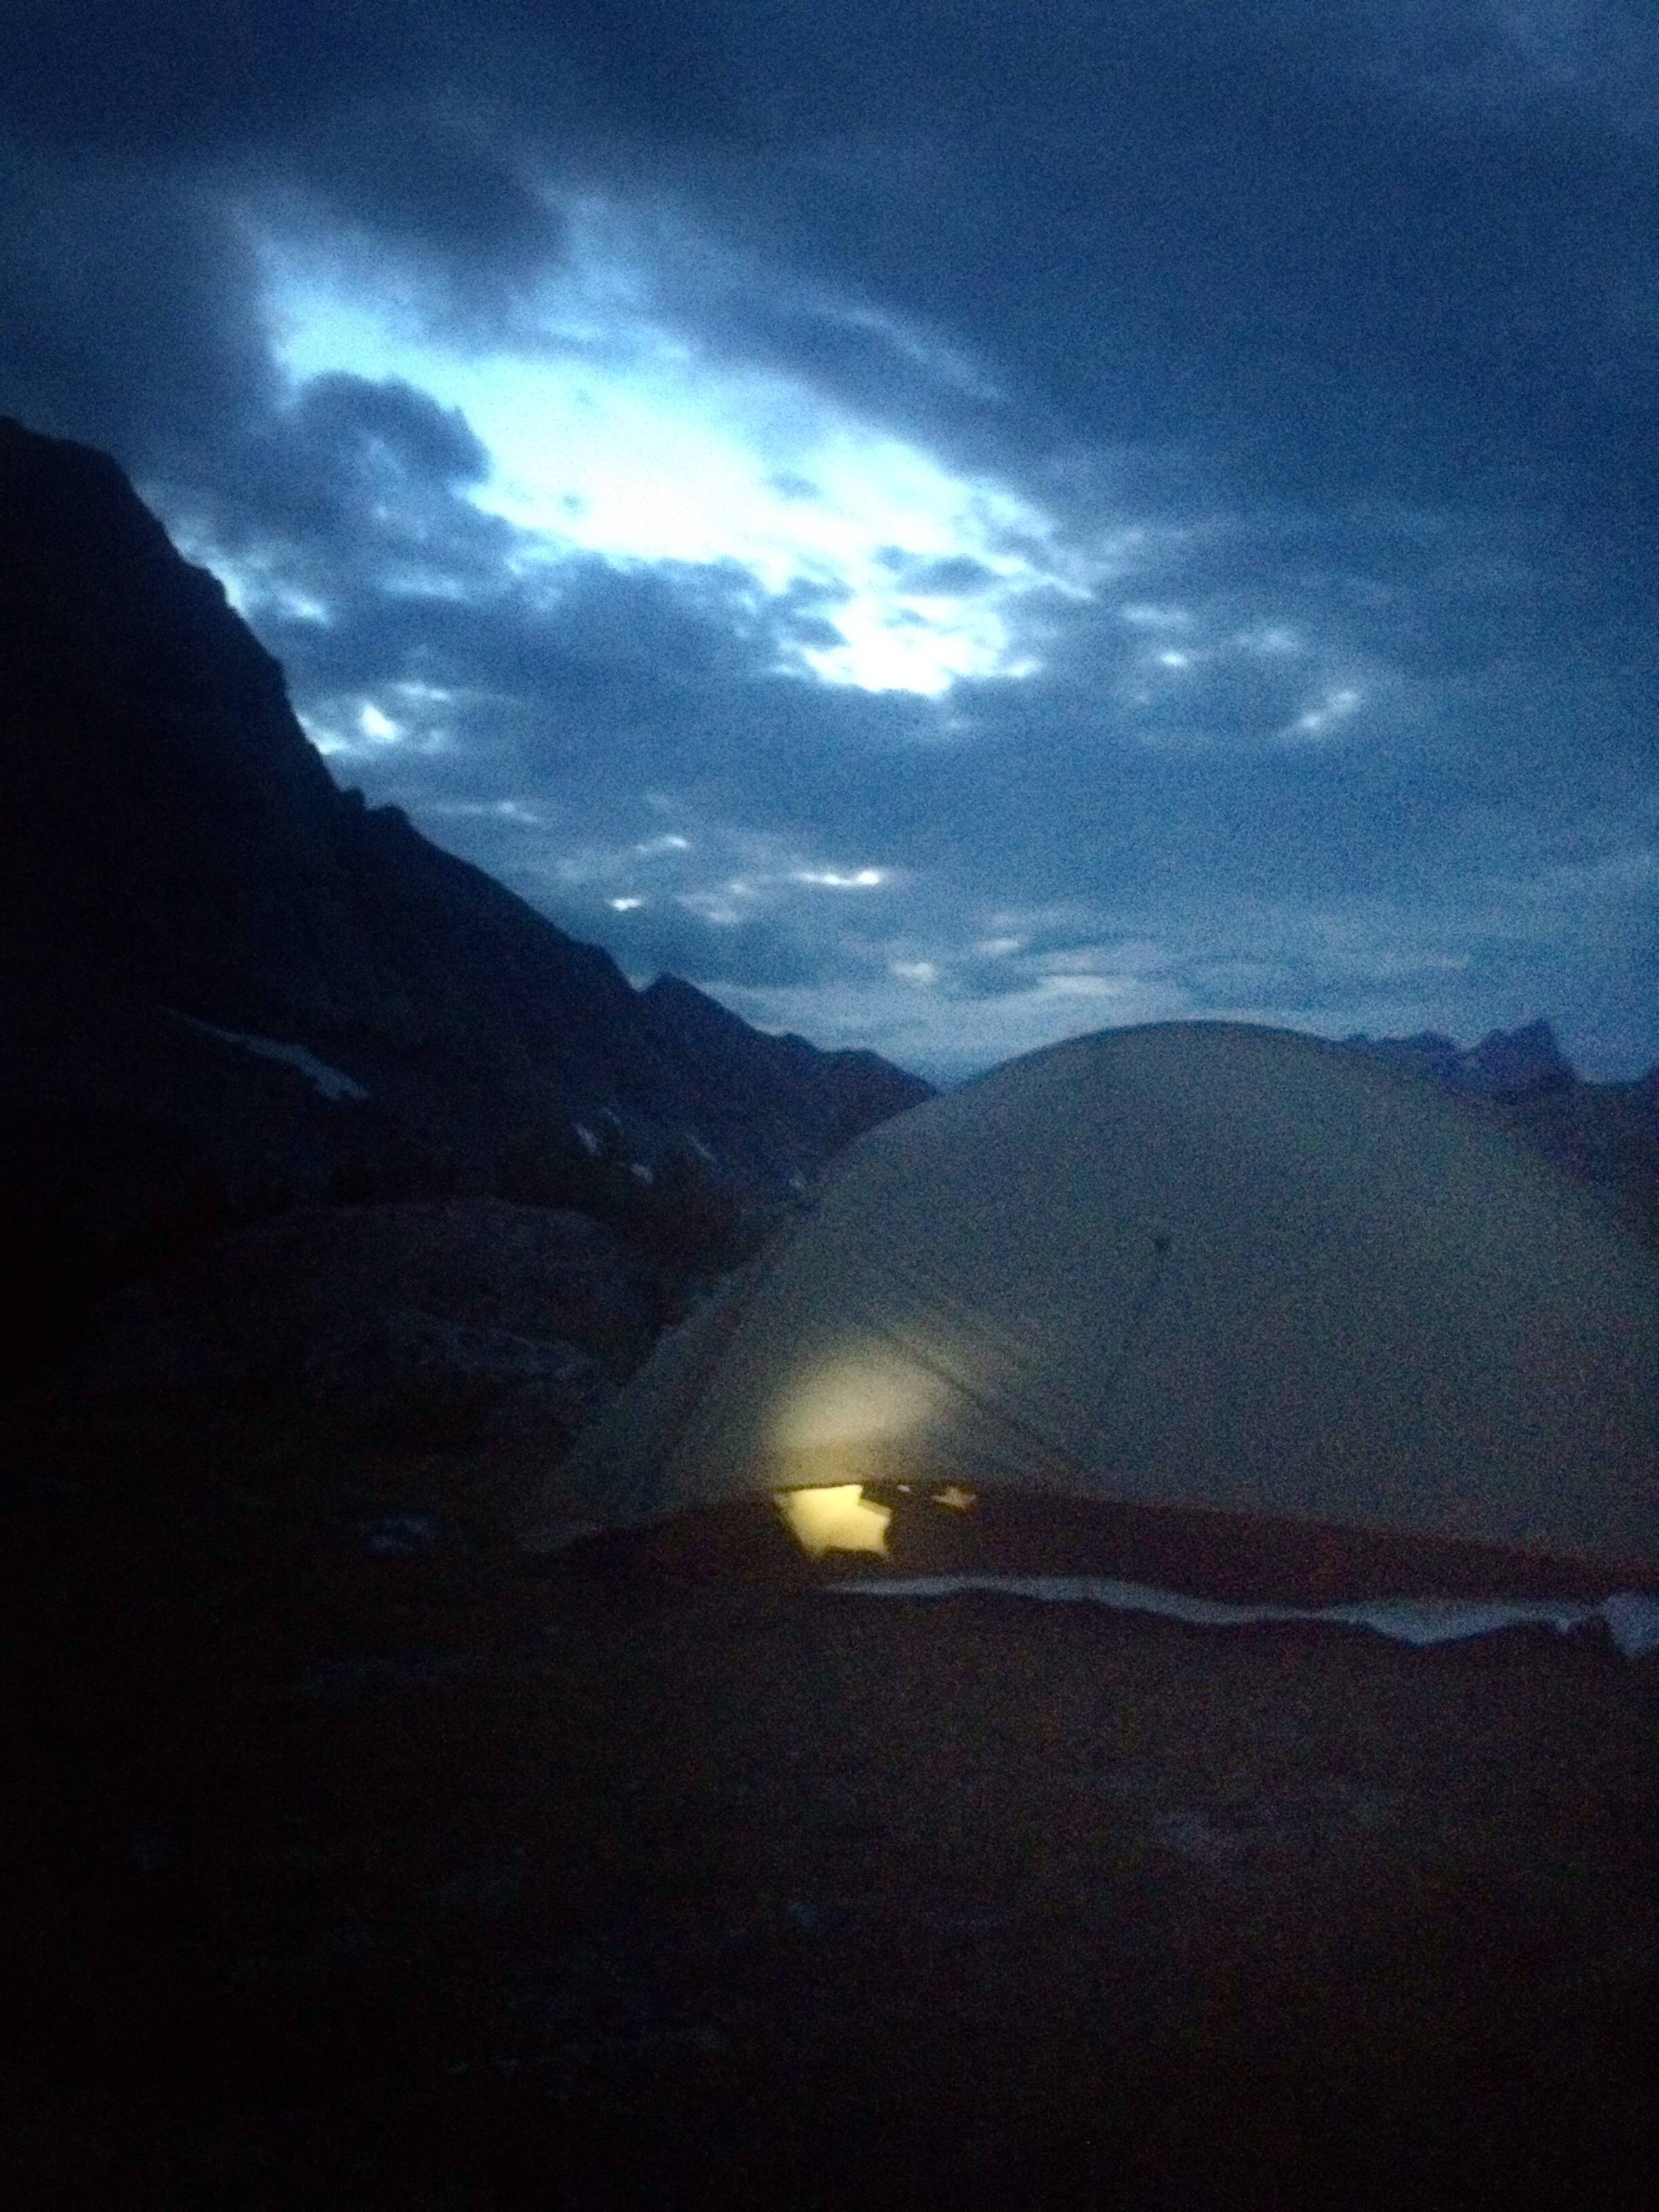 Analog's tent illuminated by headlight as he reviews the coming day's terrain.